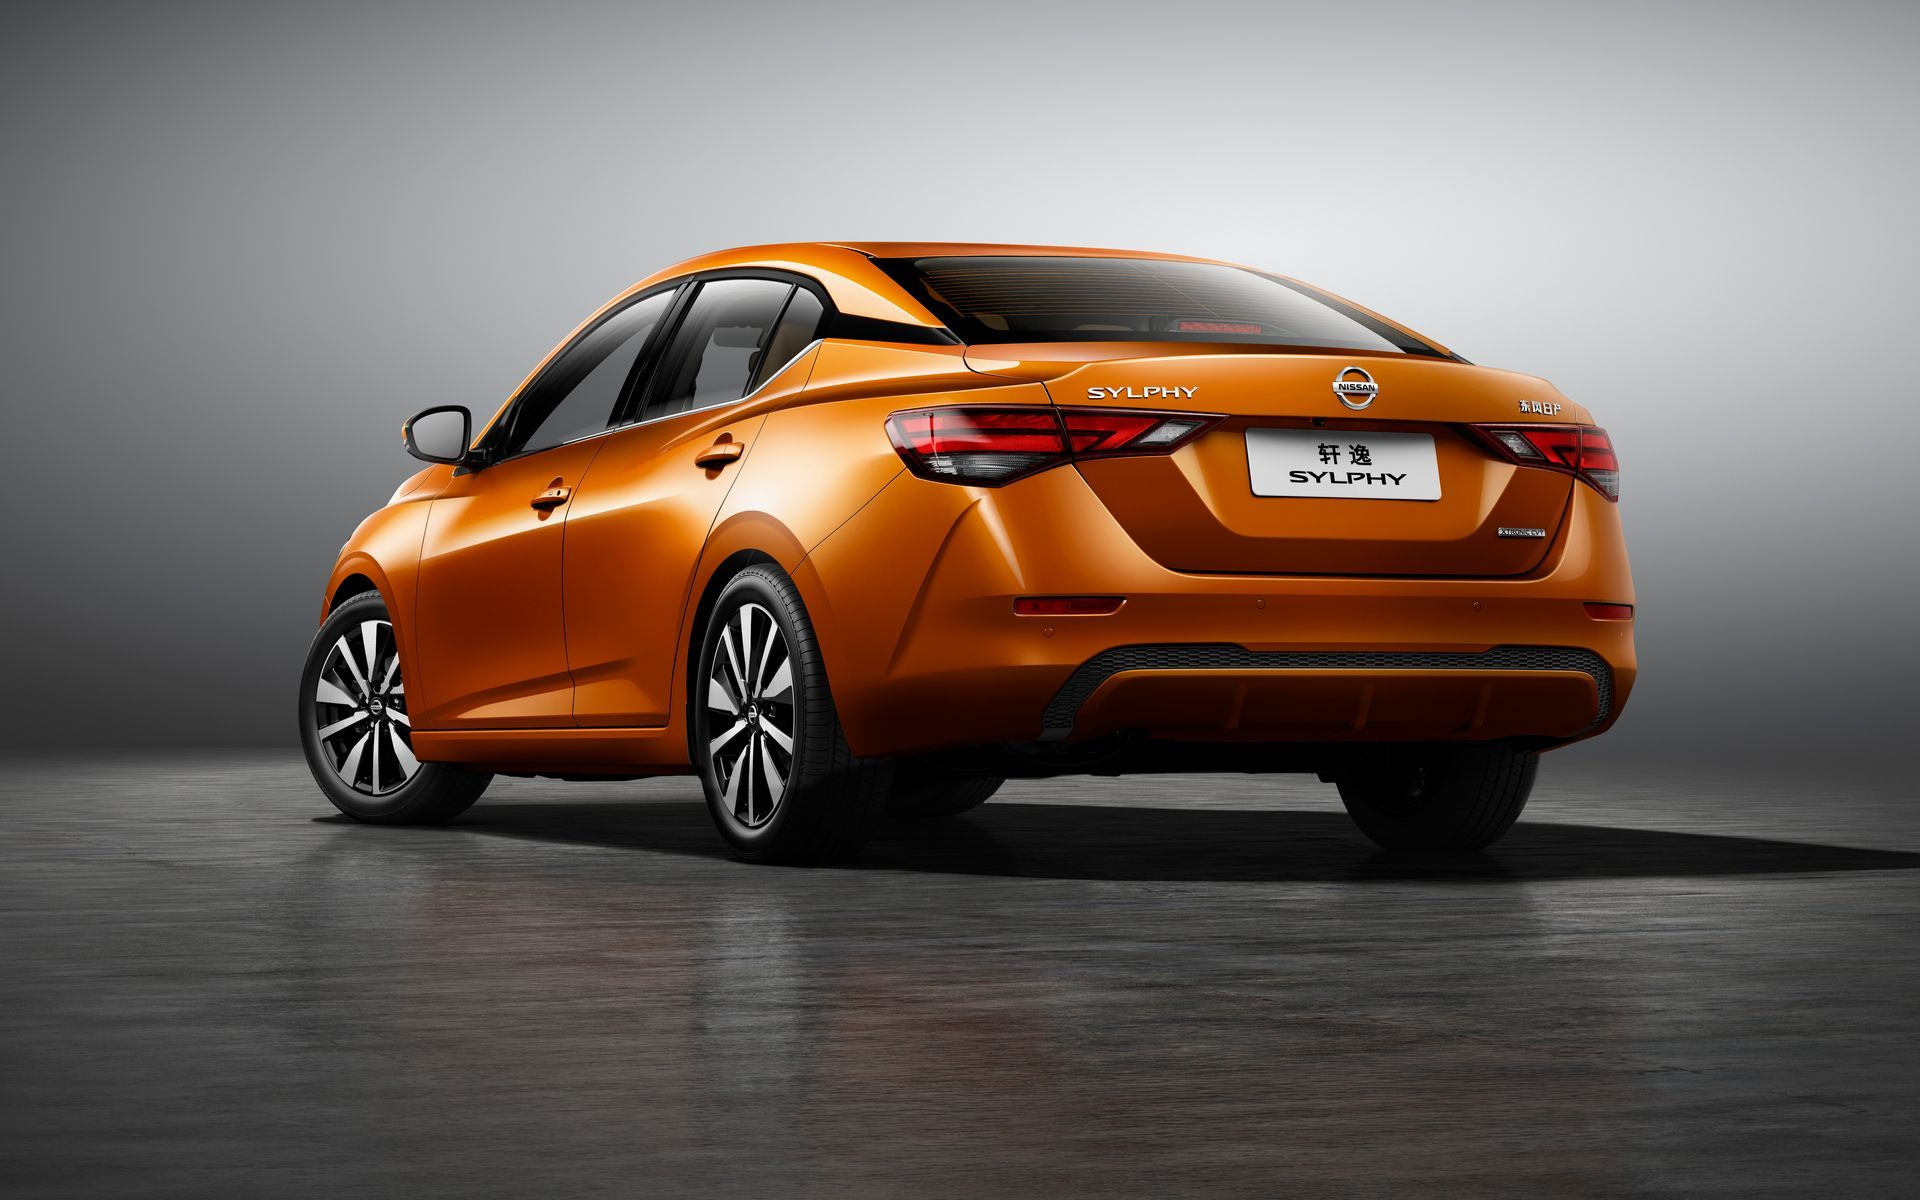 New Nissan Sylphy Launches In Shanghai Previews 2020 Sentra Carscoops New Nissan Nissan New Cars